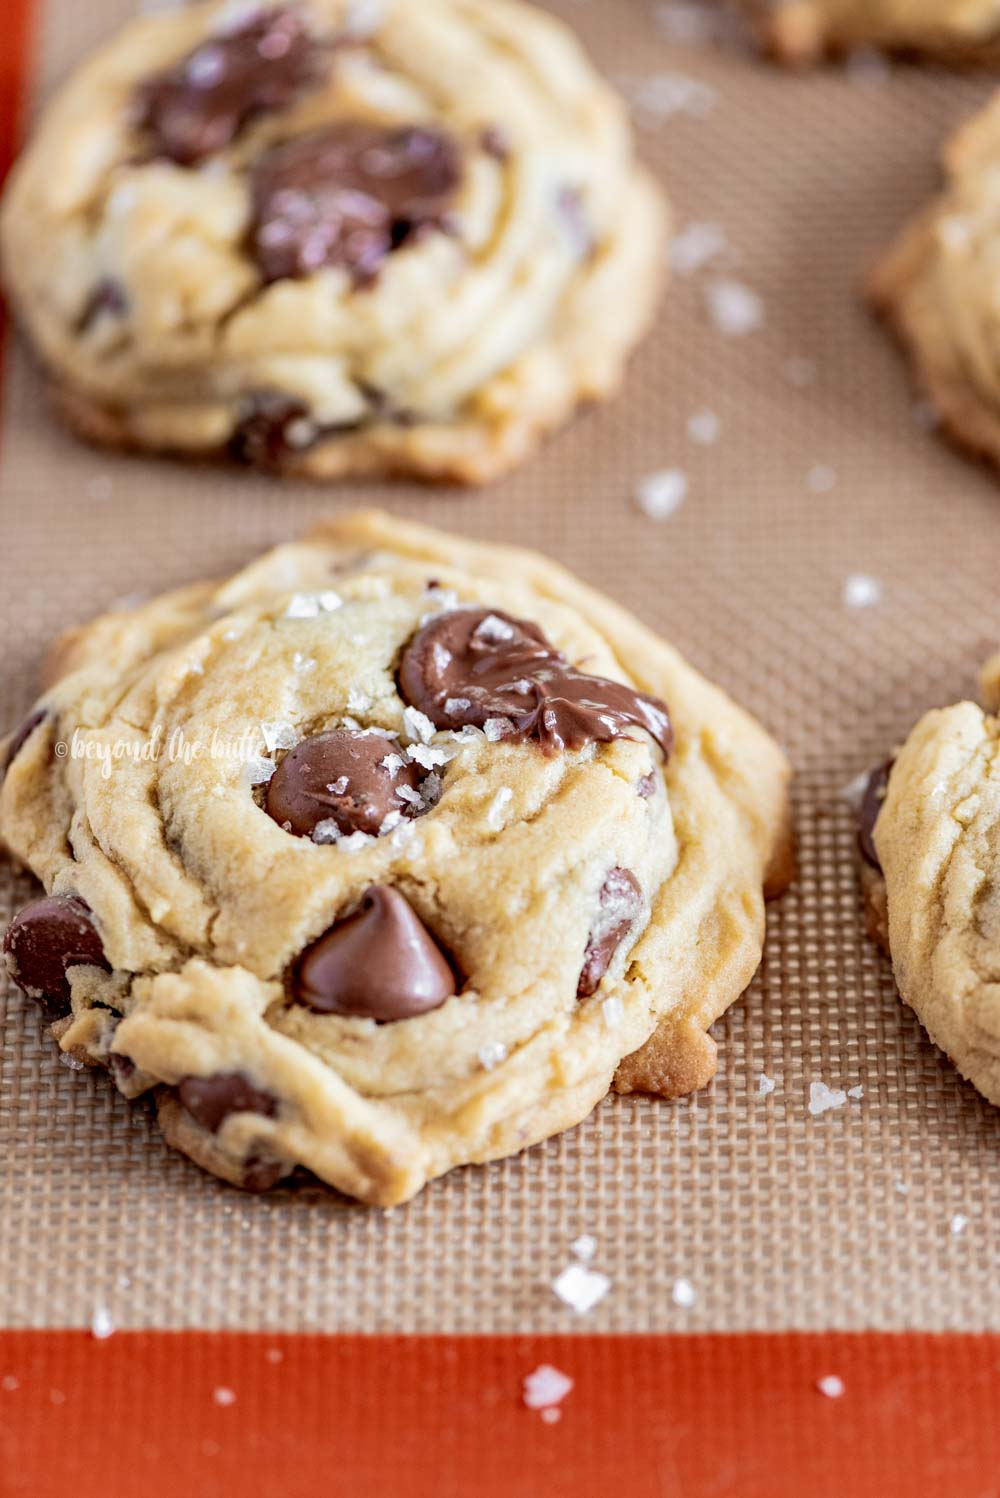 Super Soft Chocolate Chip Cookies recipe | All Images © Beyond the Butter, LLC